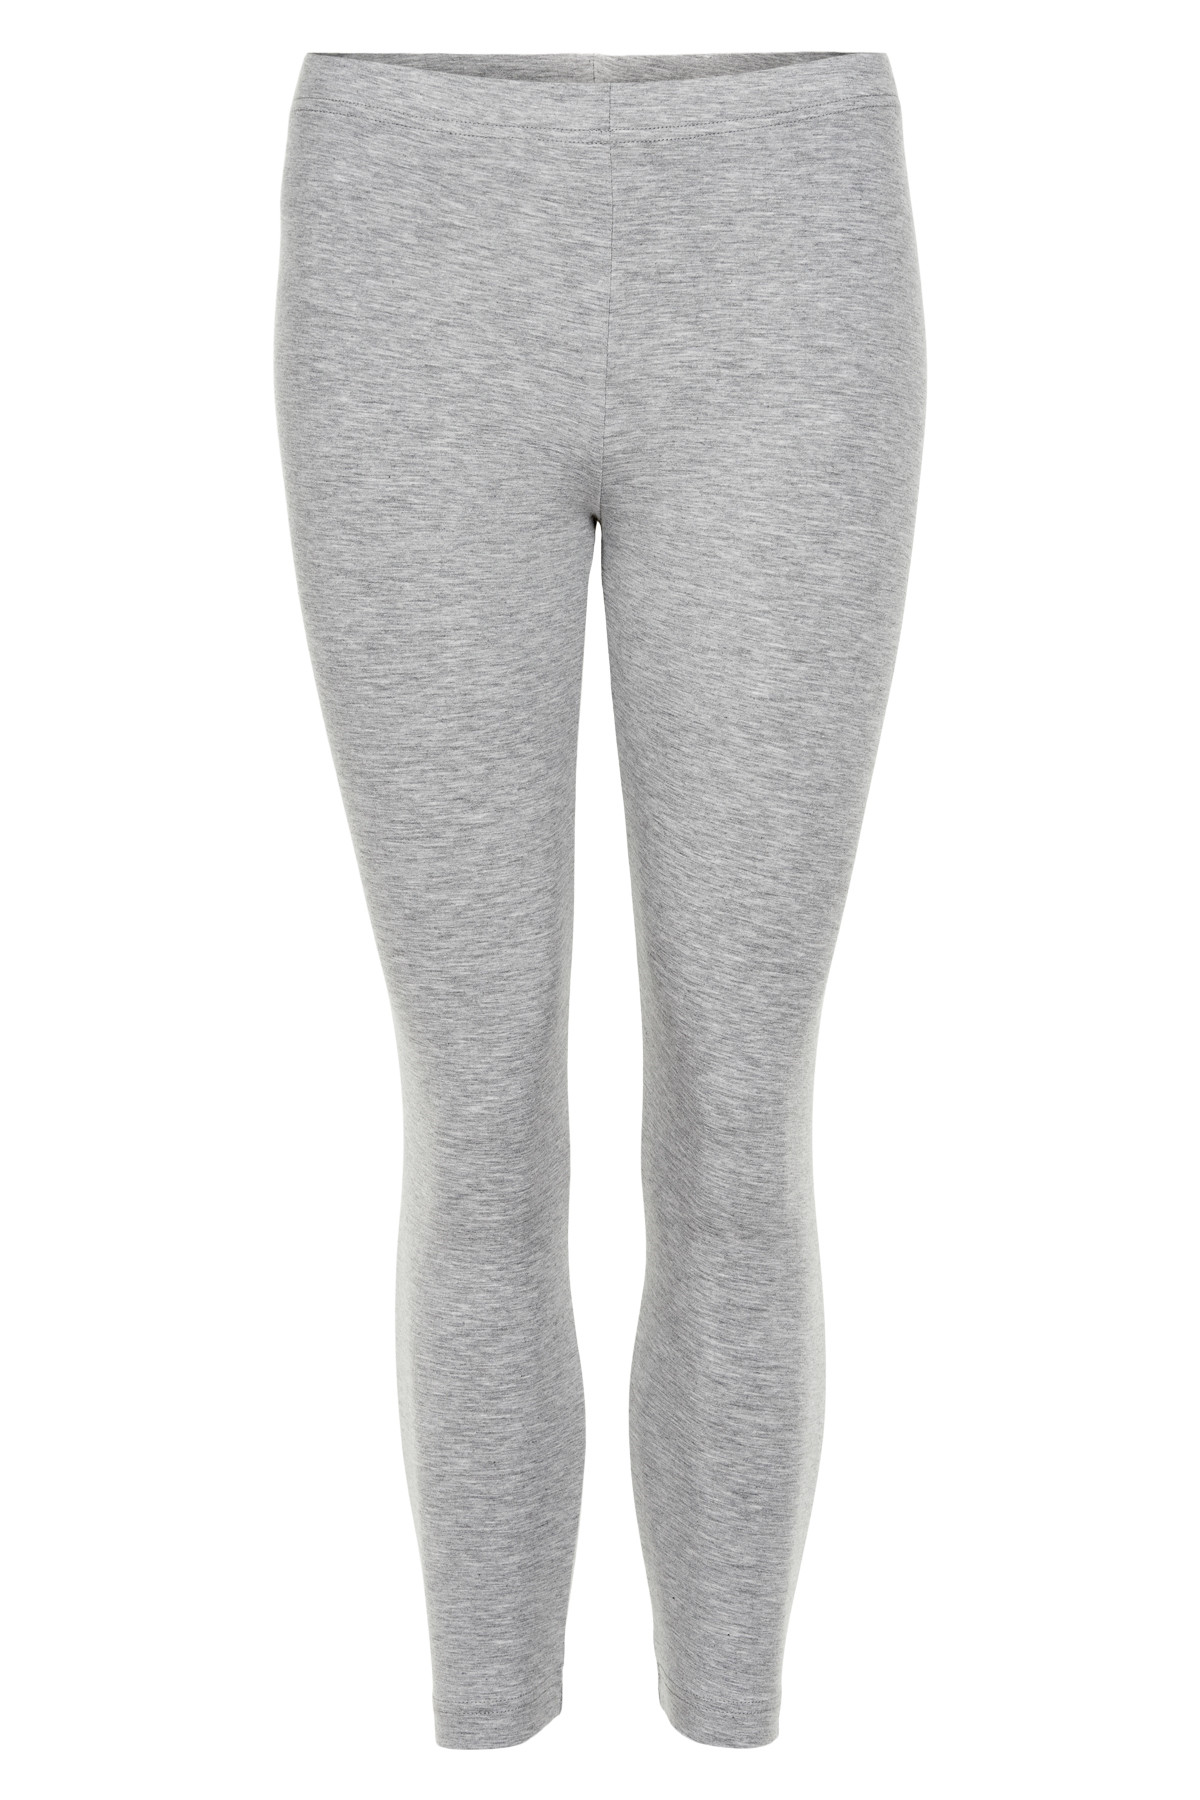 NOA NOA LEGGINGS 1-9383-1 00005 (Grey, M)